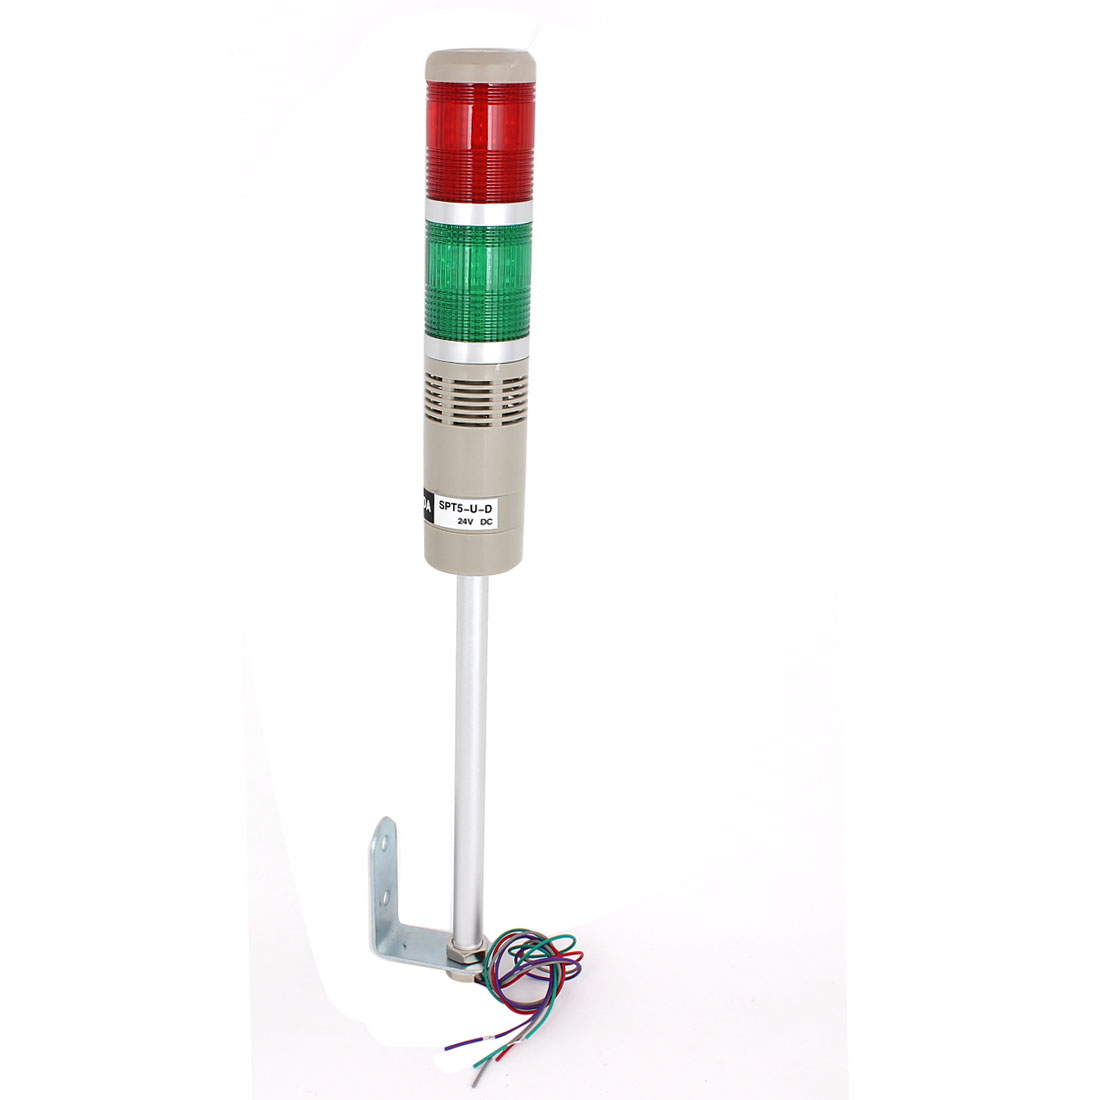 Red Green LED Industrial Tower Signal Light Track Stack Alarm Lamp